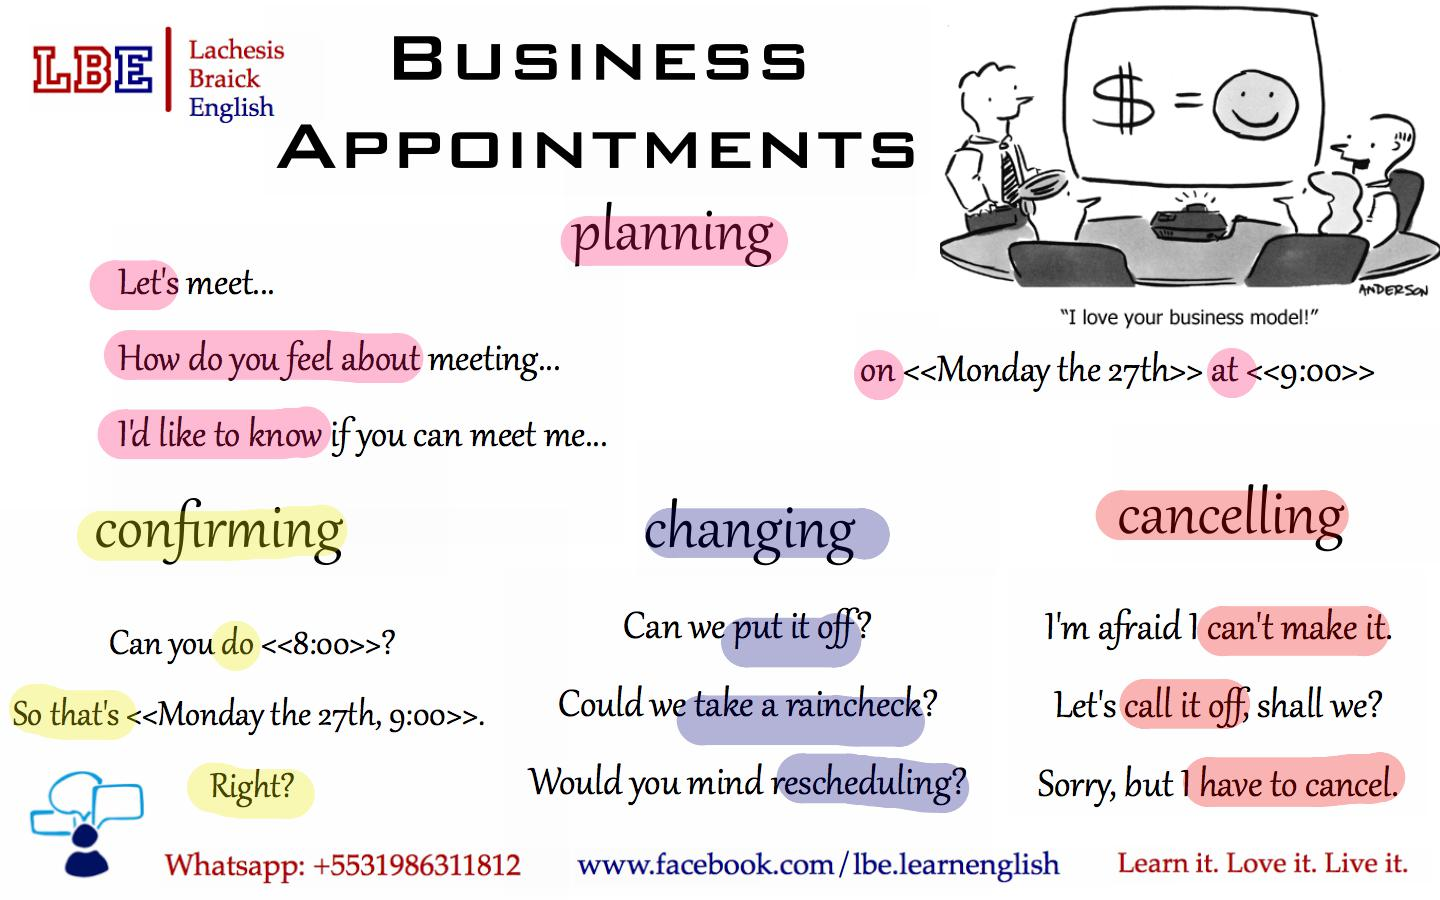 polite english indirect questions business appointments making plans with people